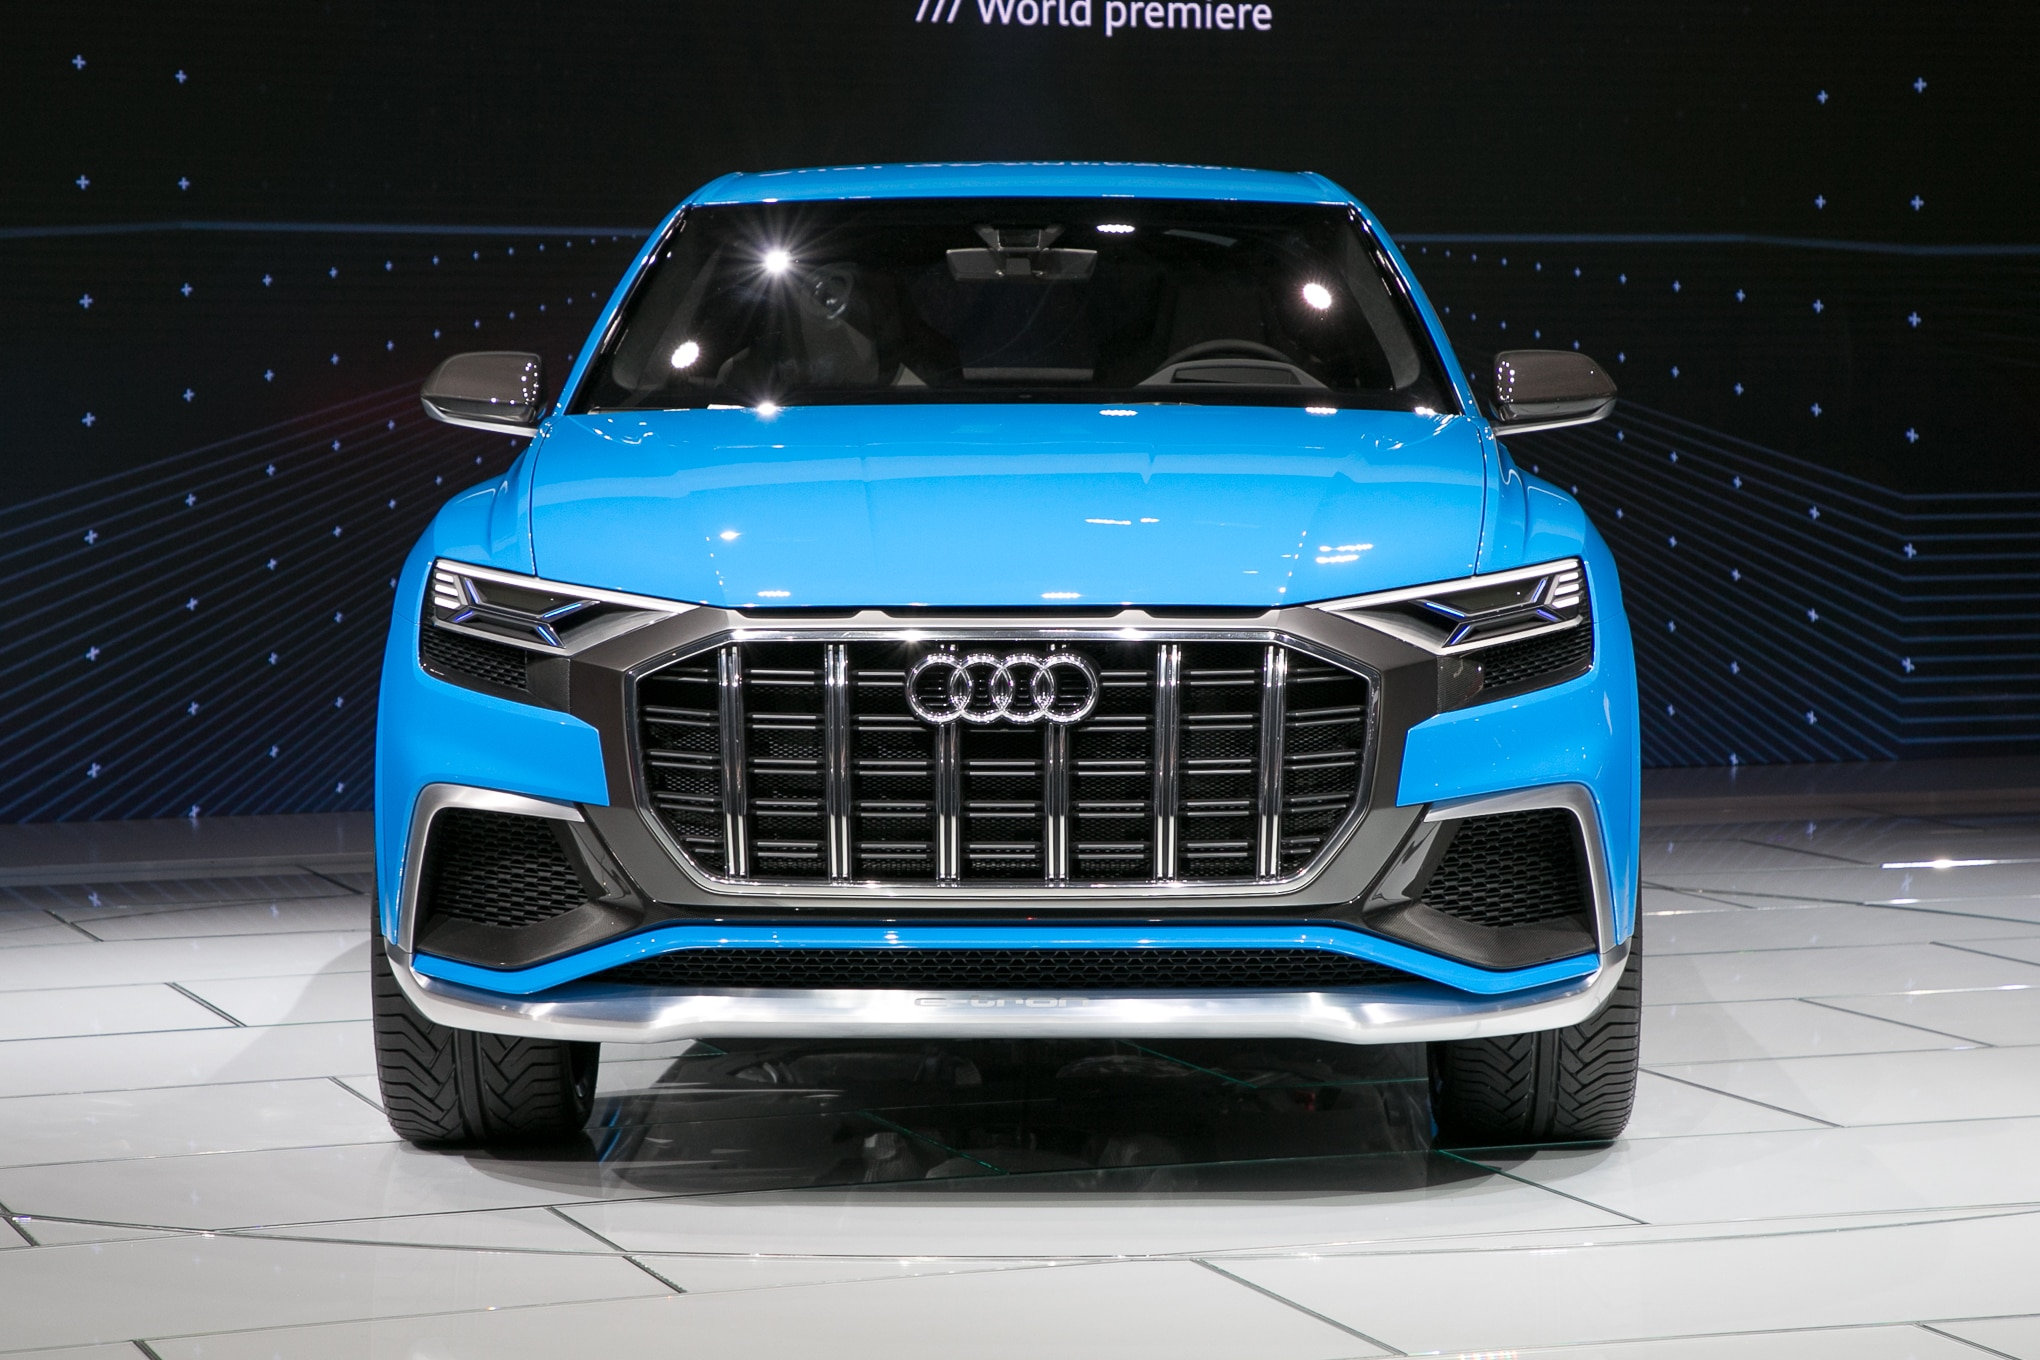 Pebble Beach Car Show >> Seven Awesome Features of the Audi Q8 Concept | Automobile Magazine